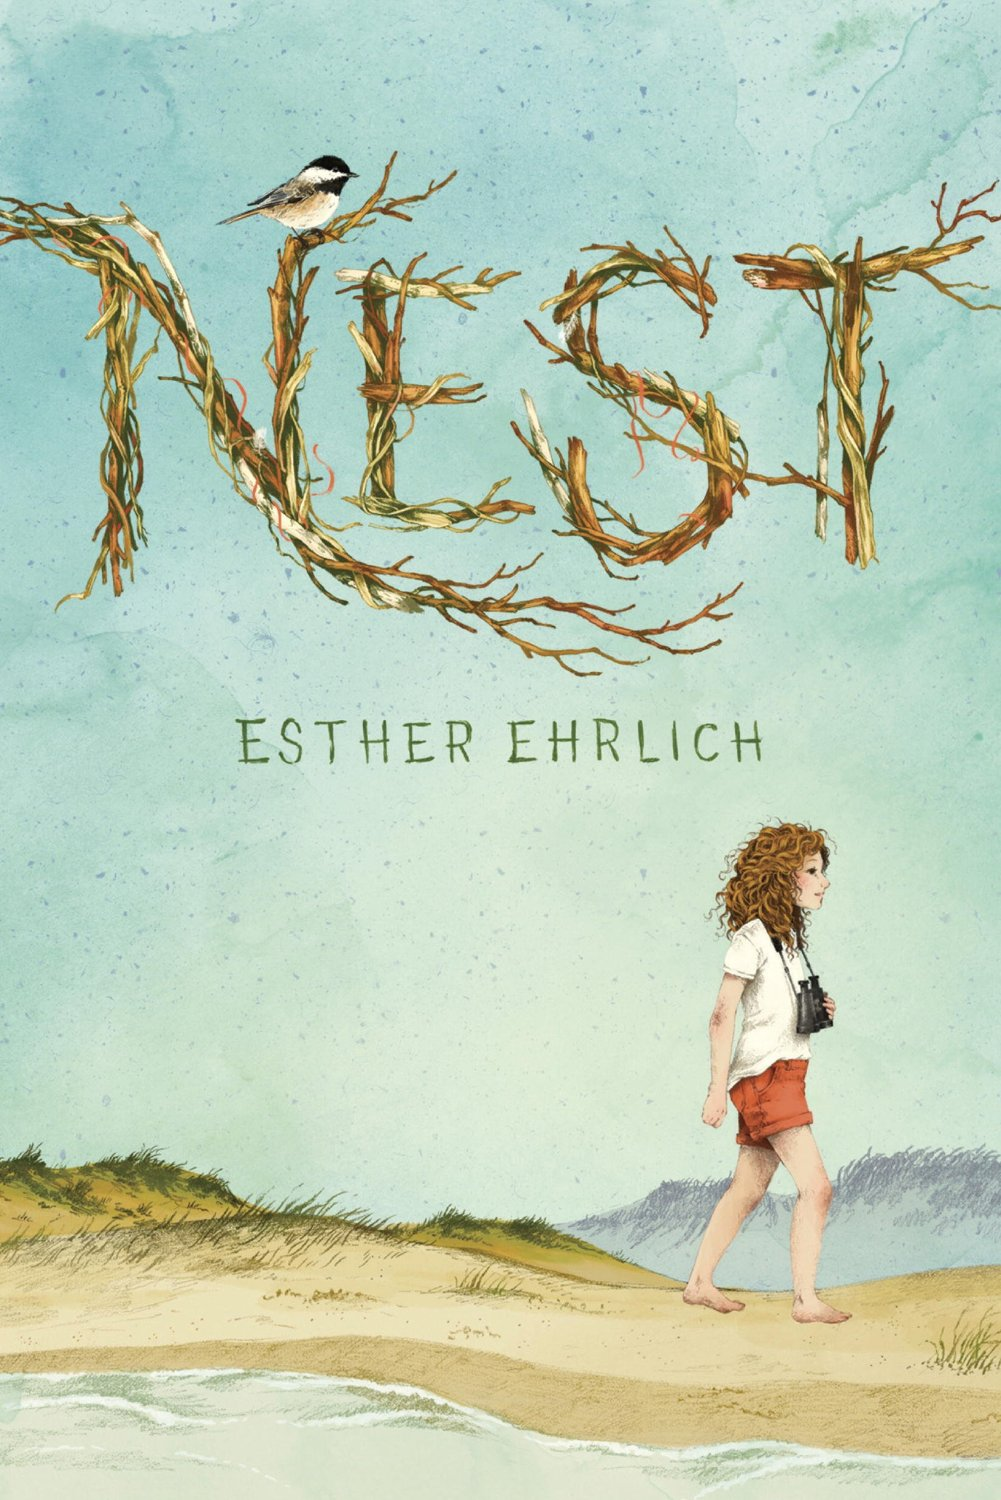 An Image of Esther Ehrlich's Nest, a middle-grade book that is about the experience of growing up. | The Black Lion Journal | The Black Lion